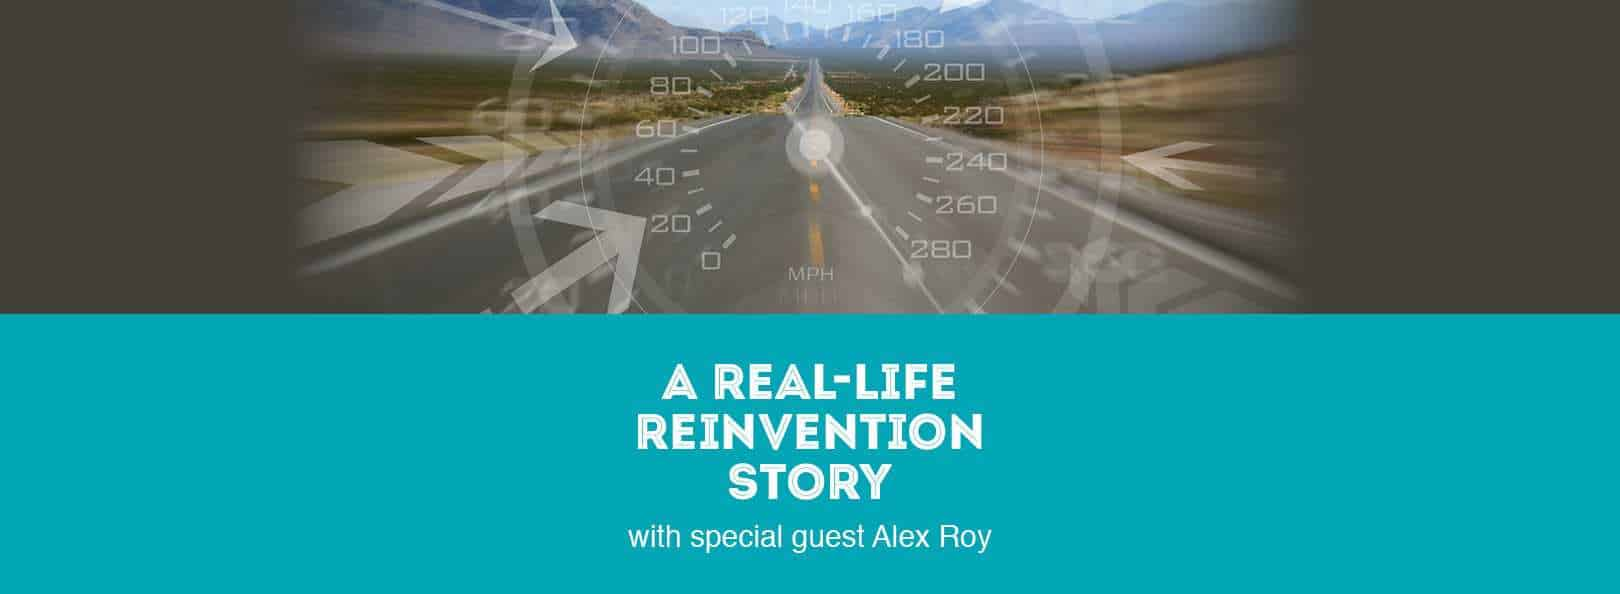 A Real-Life Reinvention Story with special guest Alex Roy